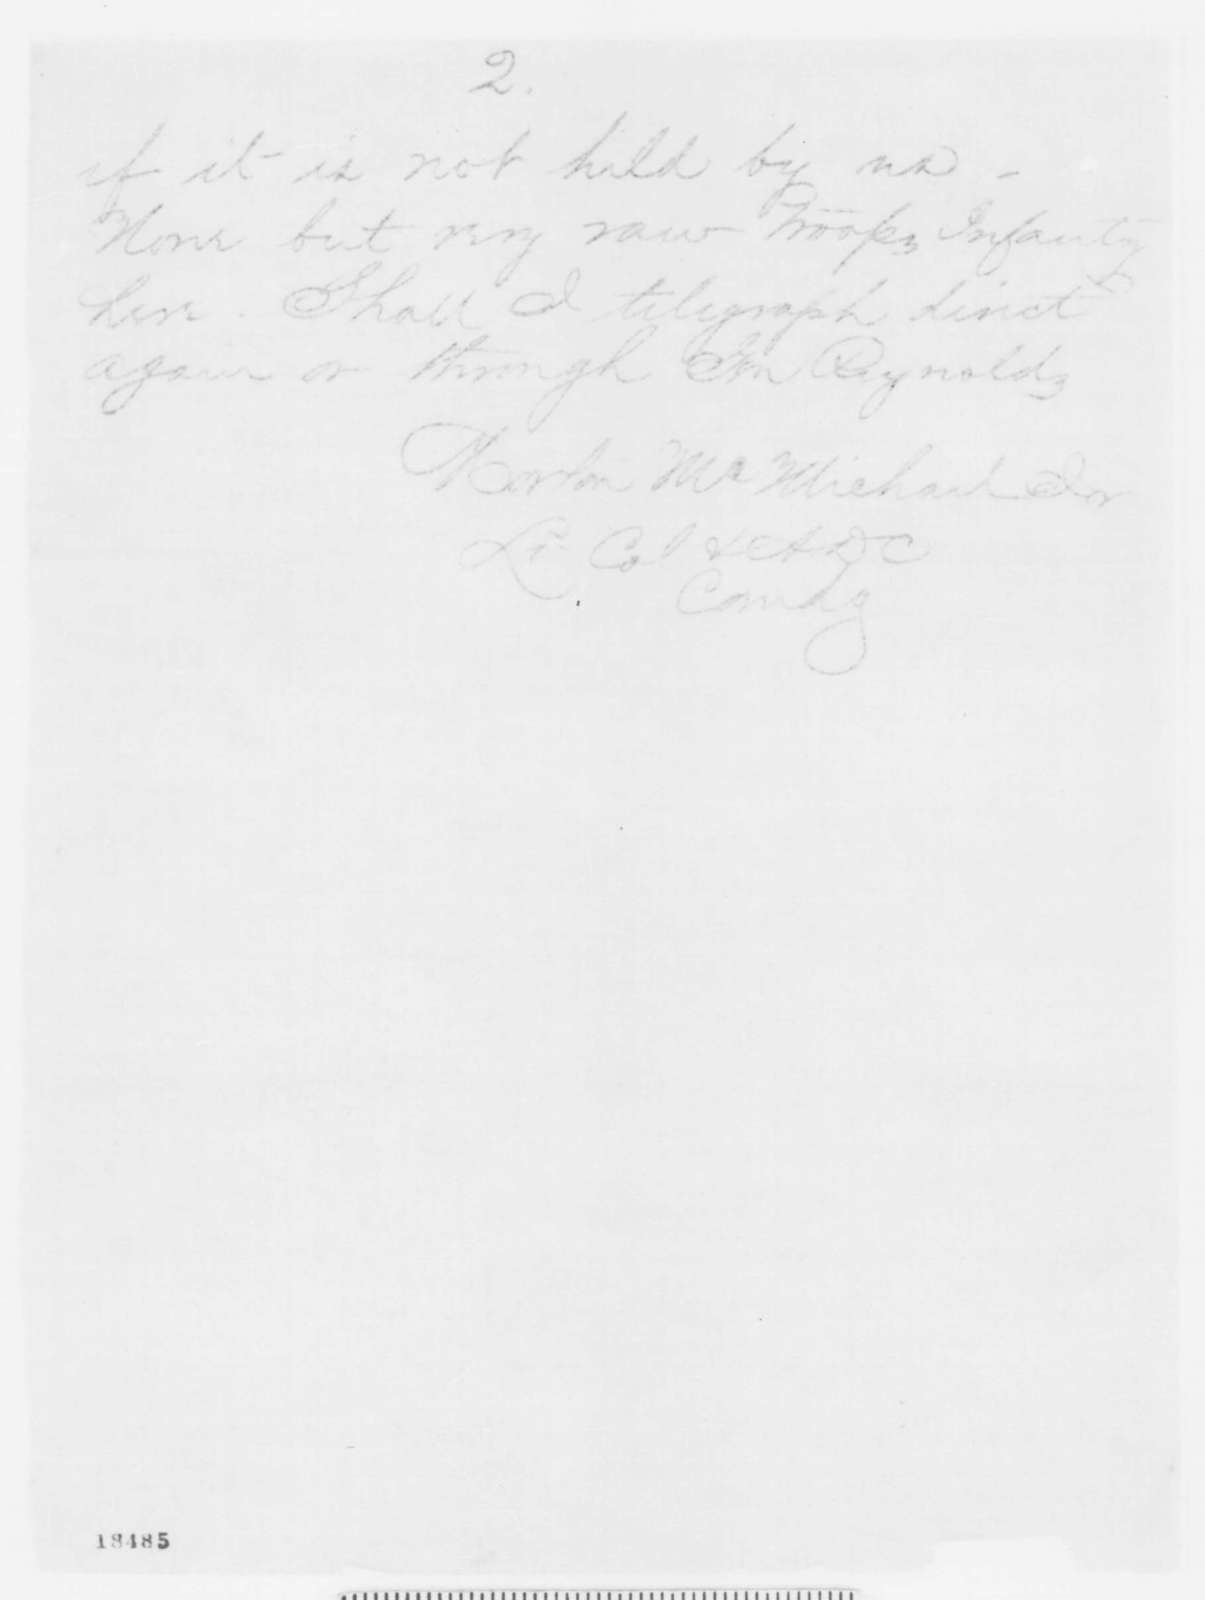 Morton McMichael Jr. to Henry Halleck, Wednesday, September 17, 1862  (Telegram concerning military affairs)